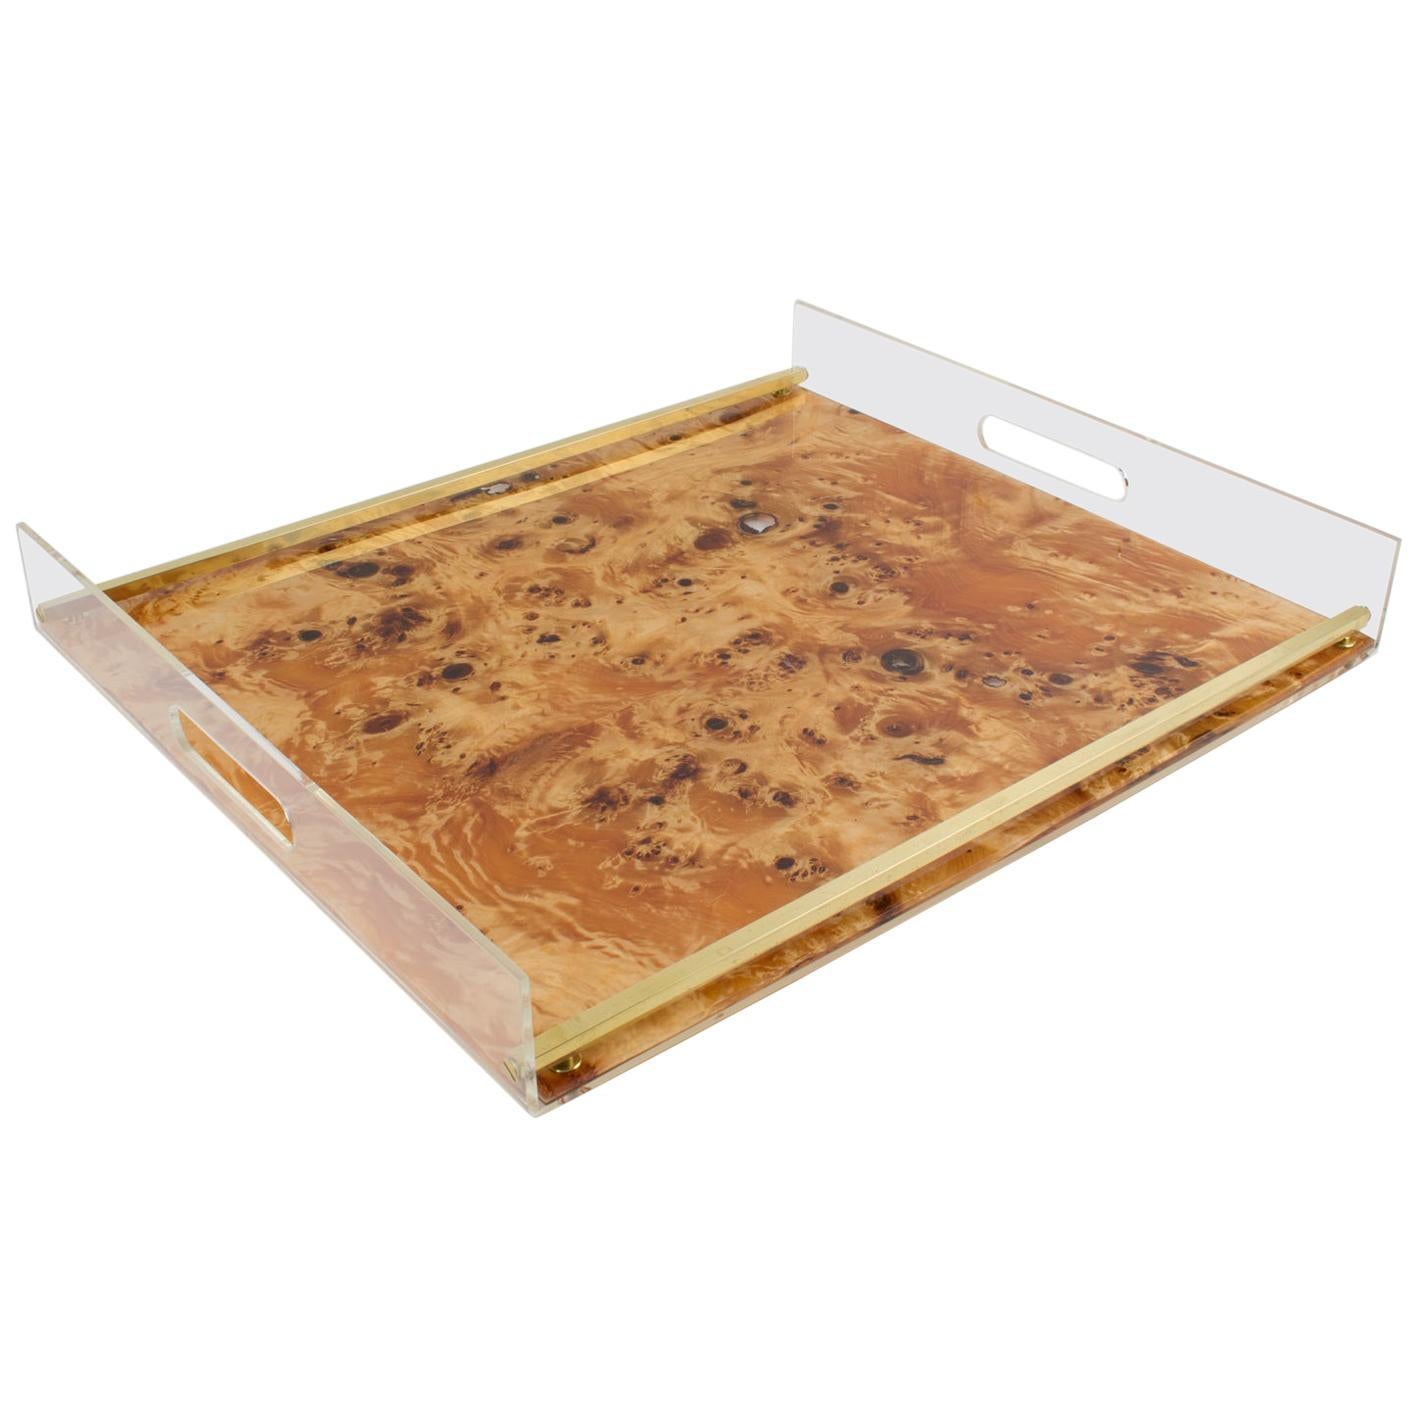 Tommaso Barbi 1970s Lucite and Burl Wood Barware Tray